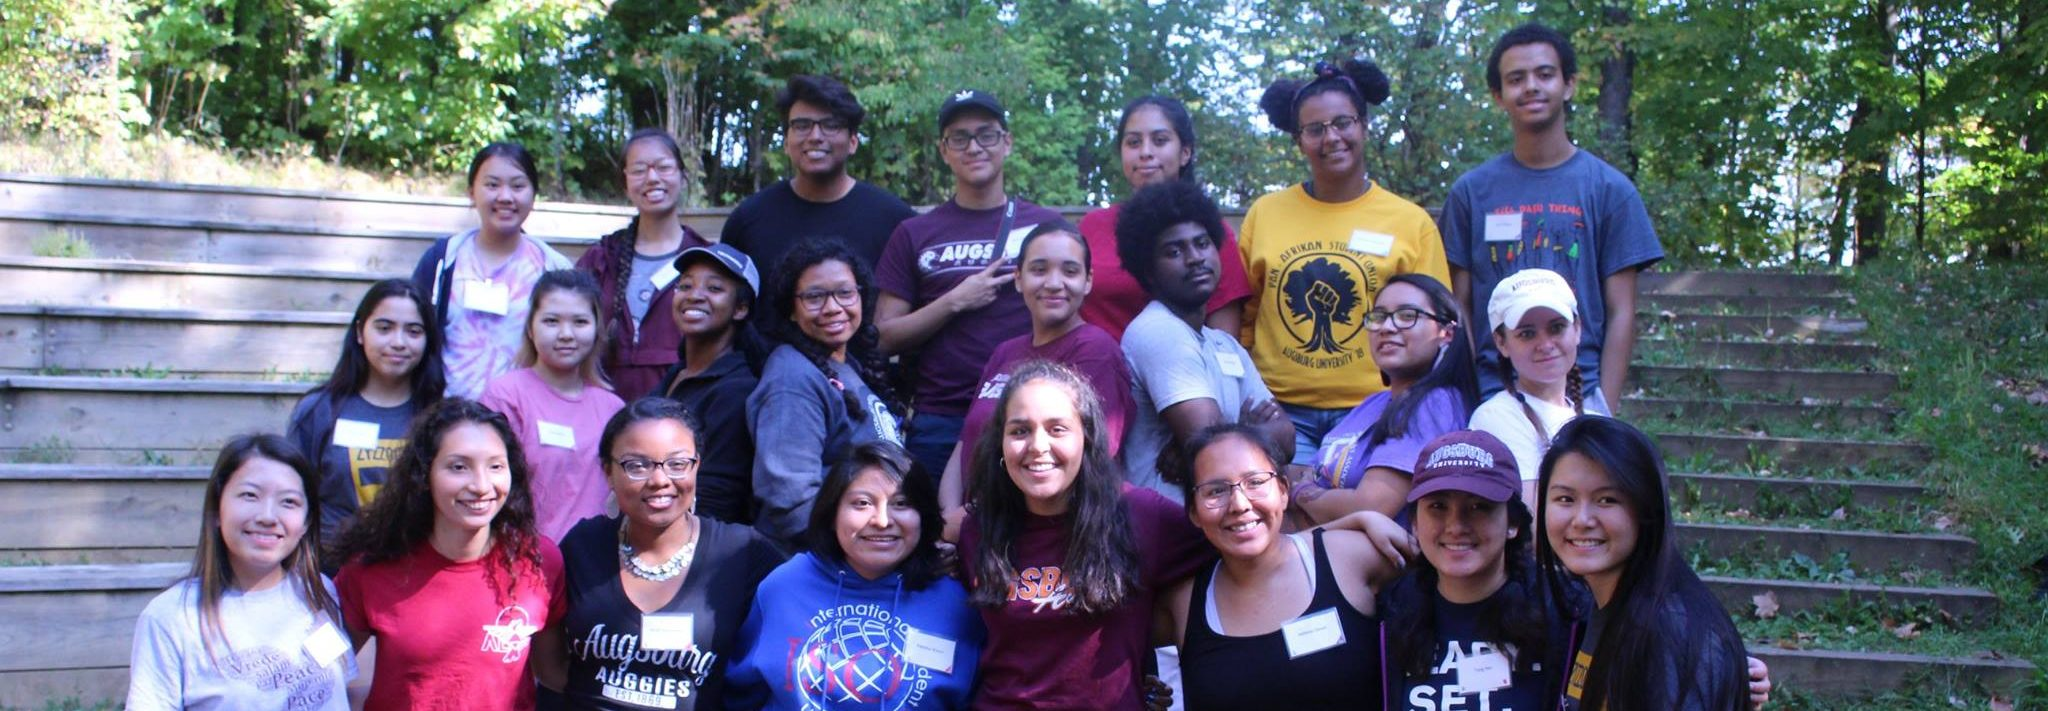 Leaders from Multicultural Student Organizations gather at annual Fall Leadership Retreat.